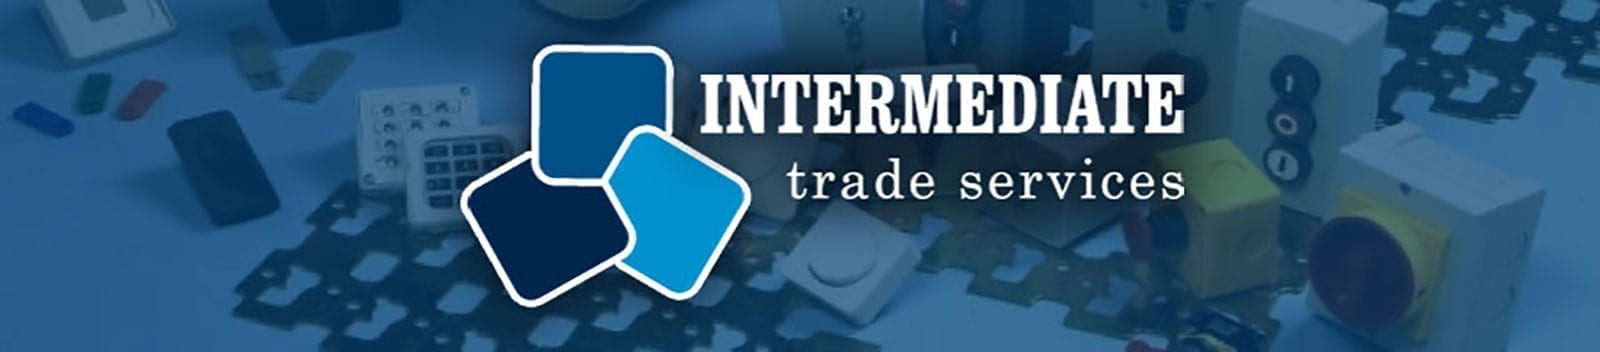 intermediatetradeservices.nl